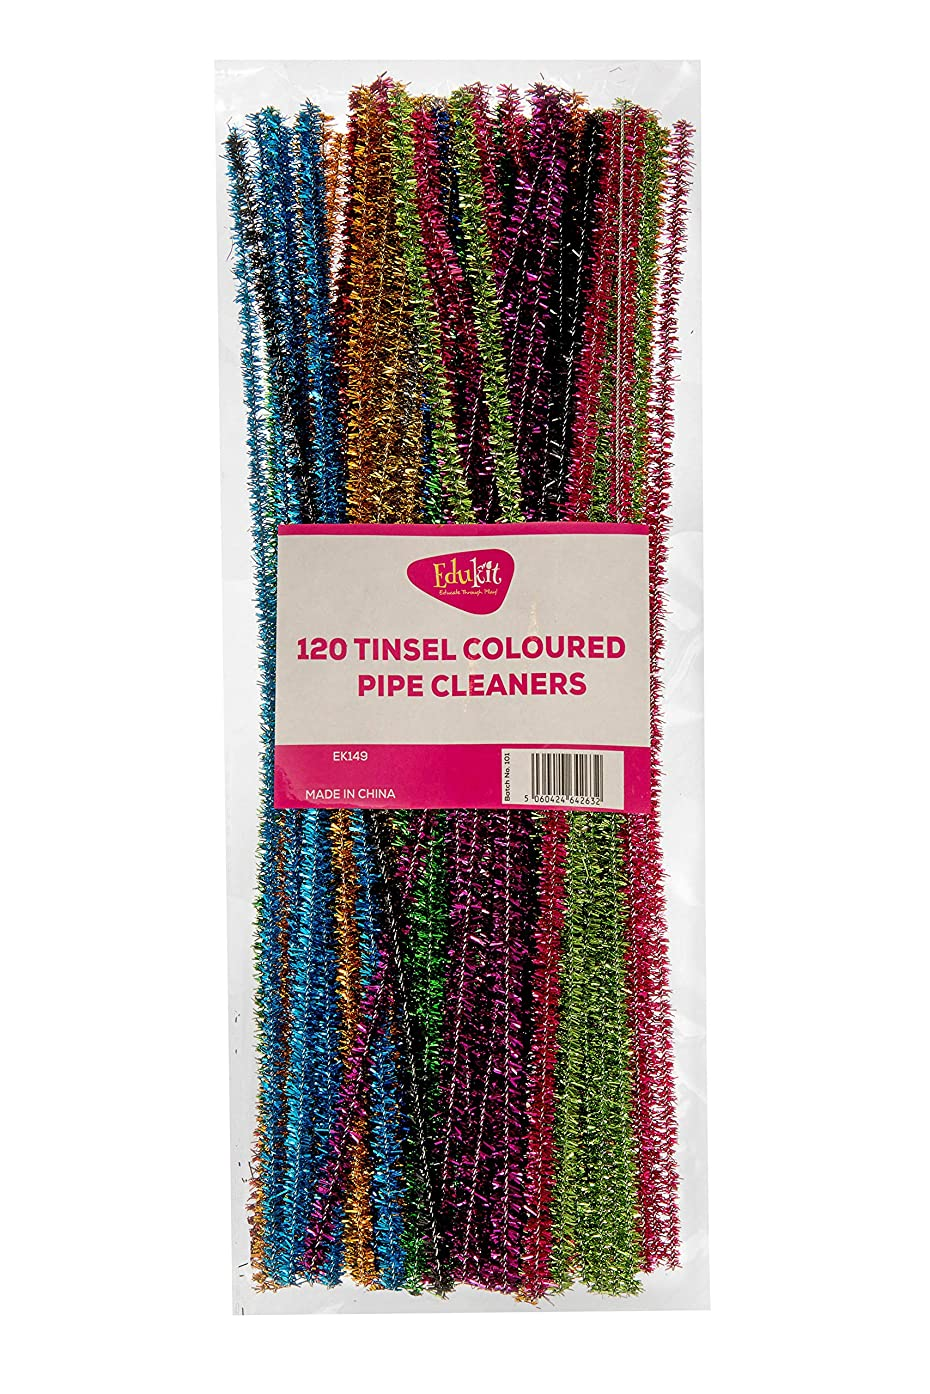 Edukit Pack of 120 Pipe Cleaners , Shiny Metallic Sparkle Tinsel, in Assorted Colours, Craft All-Purpose Wire Pipe Cleaners 28cm x 6mm.